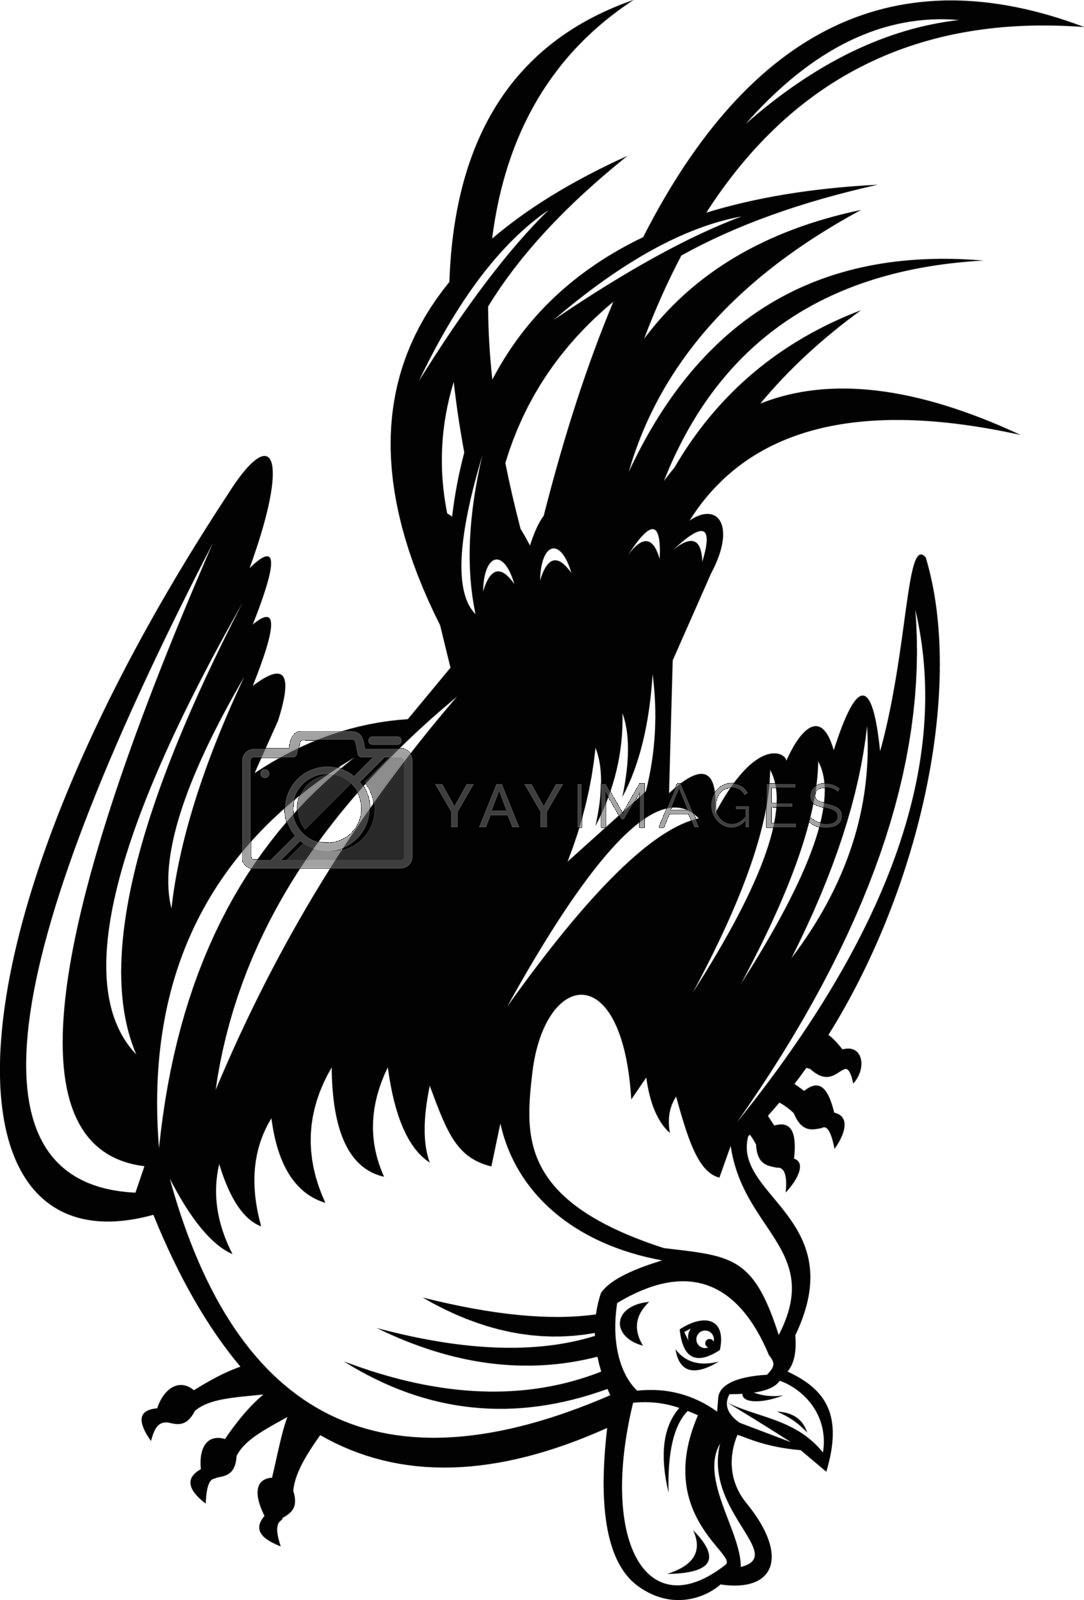 Retro style illustration of junglefowl, jungle fowl, cockerel or rooster in fighting stance viewed from low angle on isolated background in black and white.